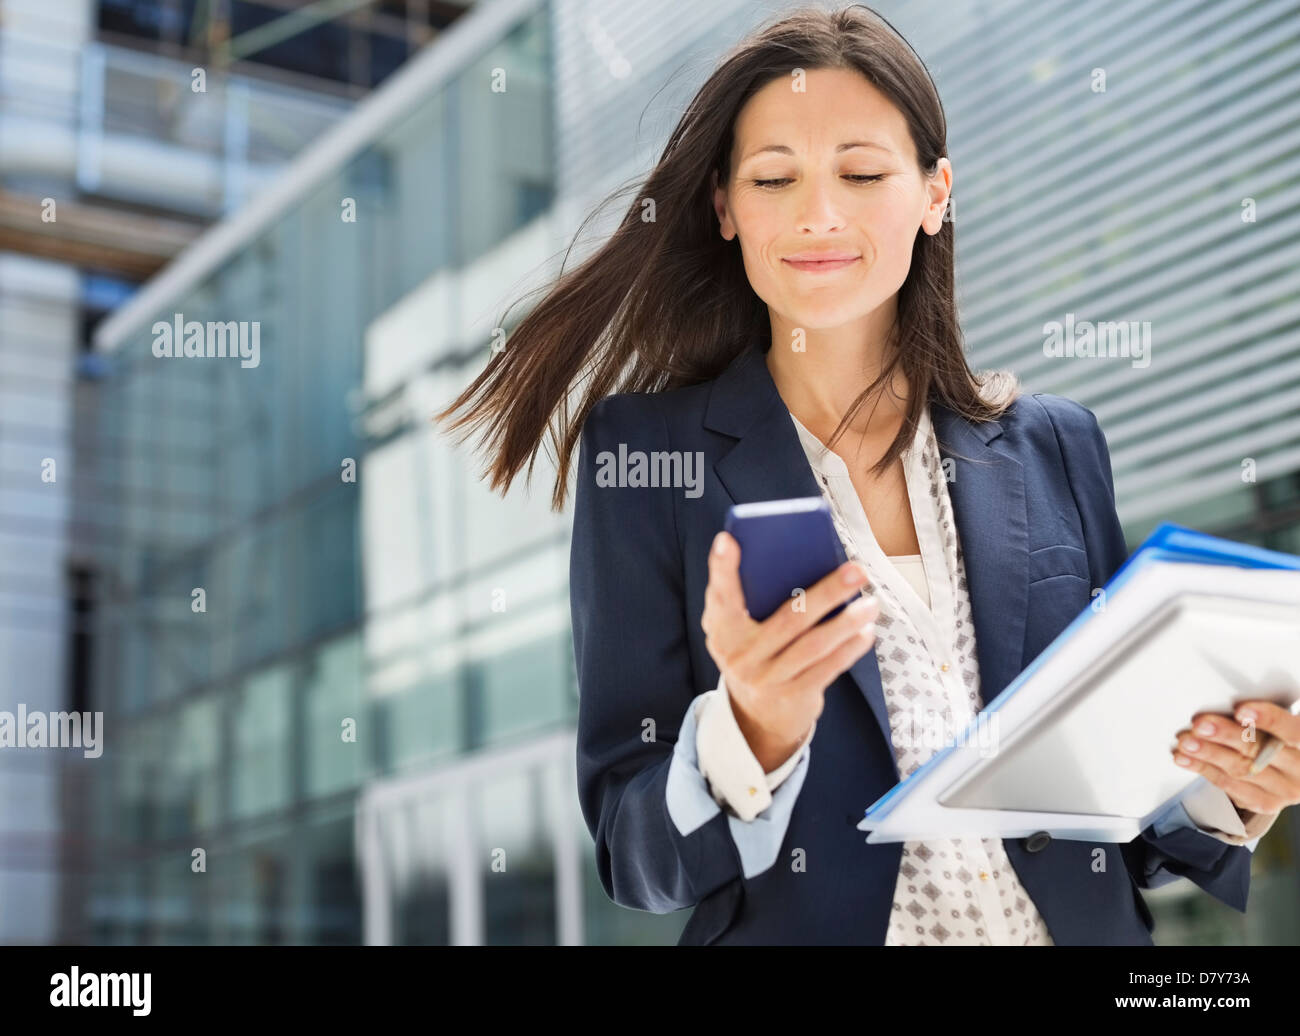 Businesswoman using cell phone in office - Stock Image